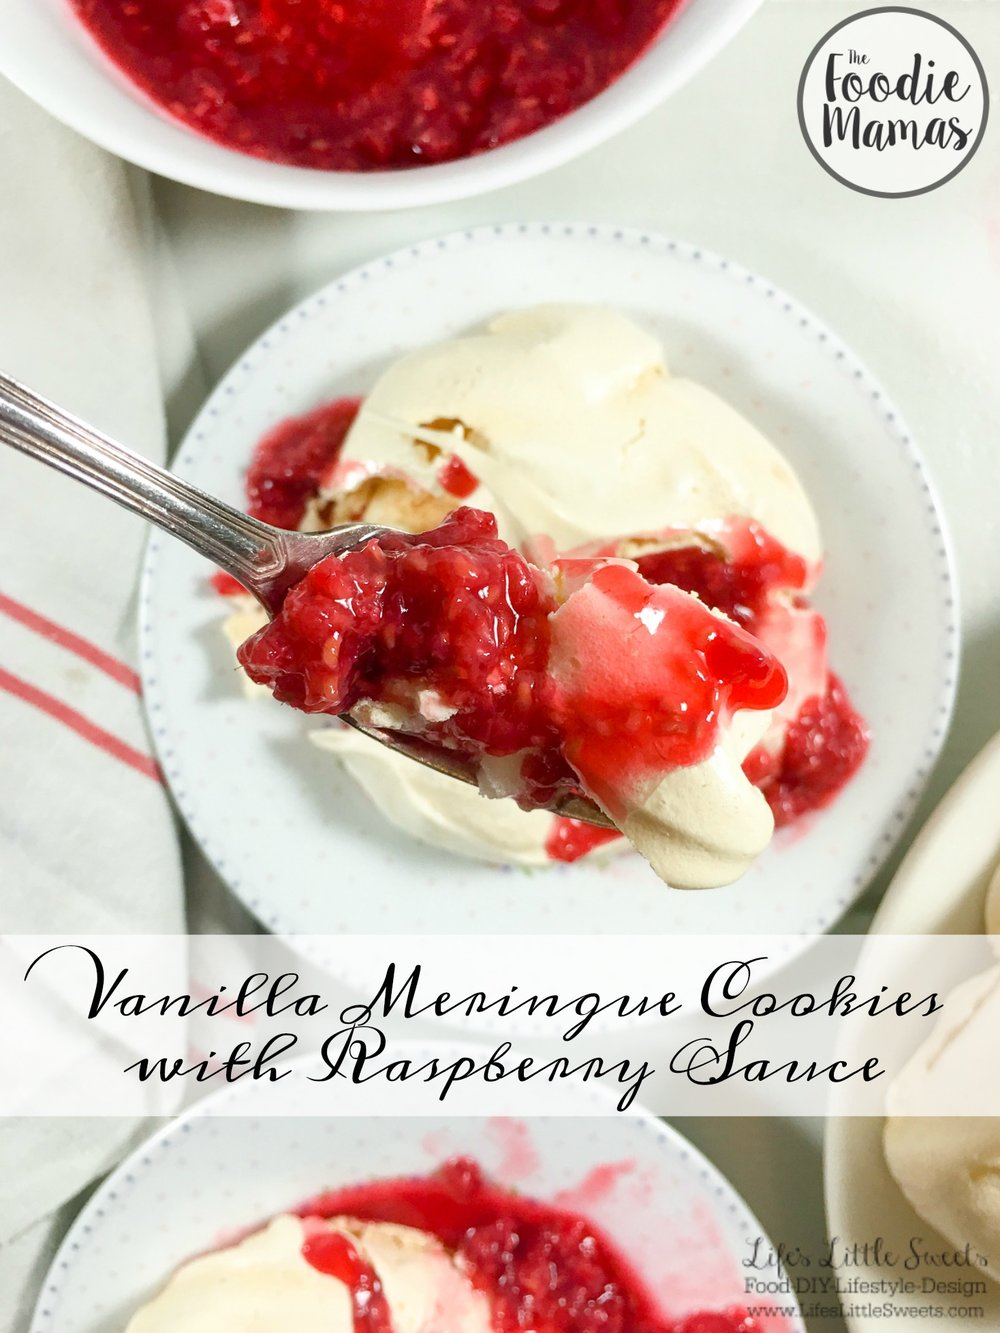 Vanilla Meringue Cookies with Raspberry Sauce